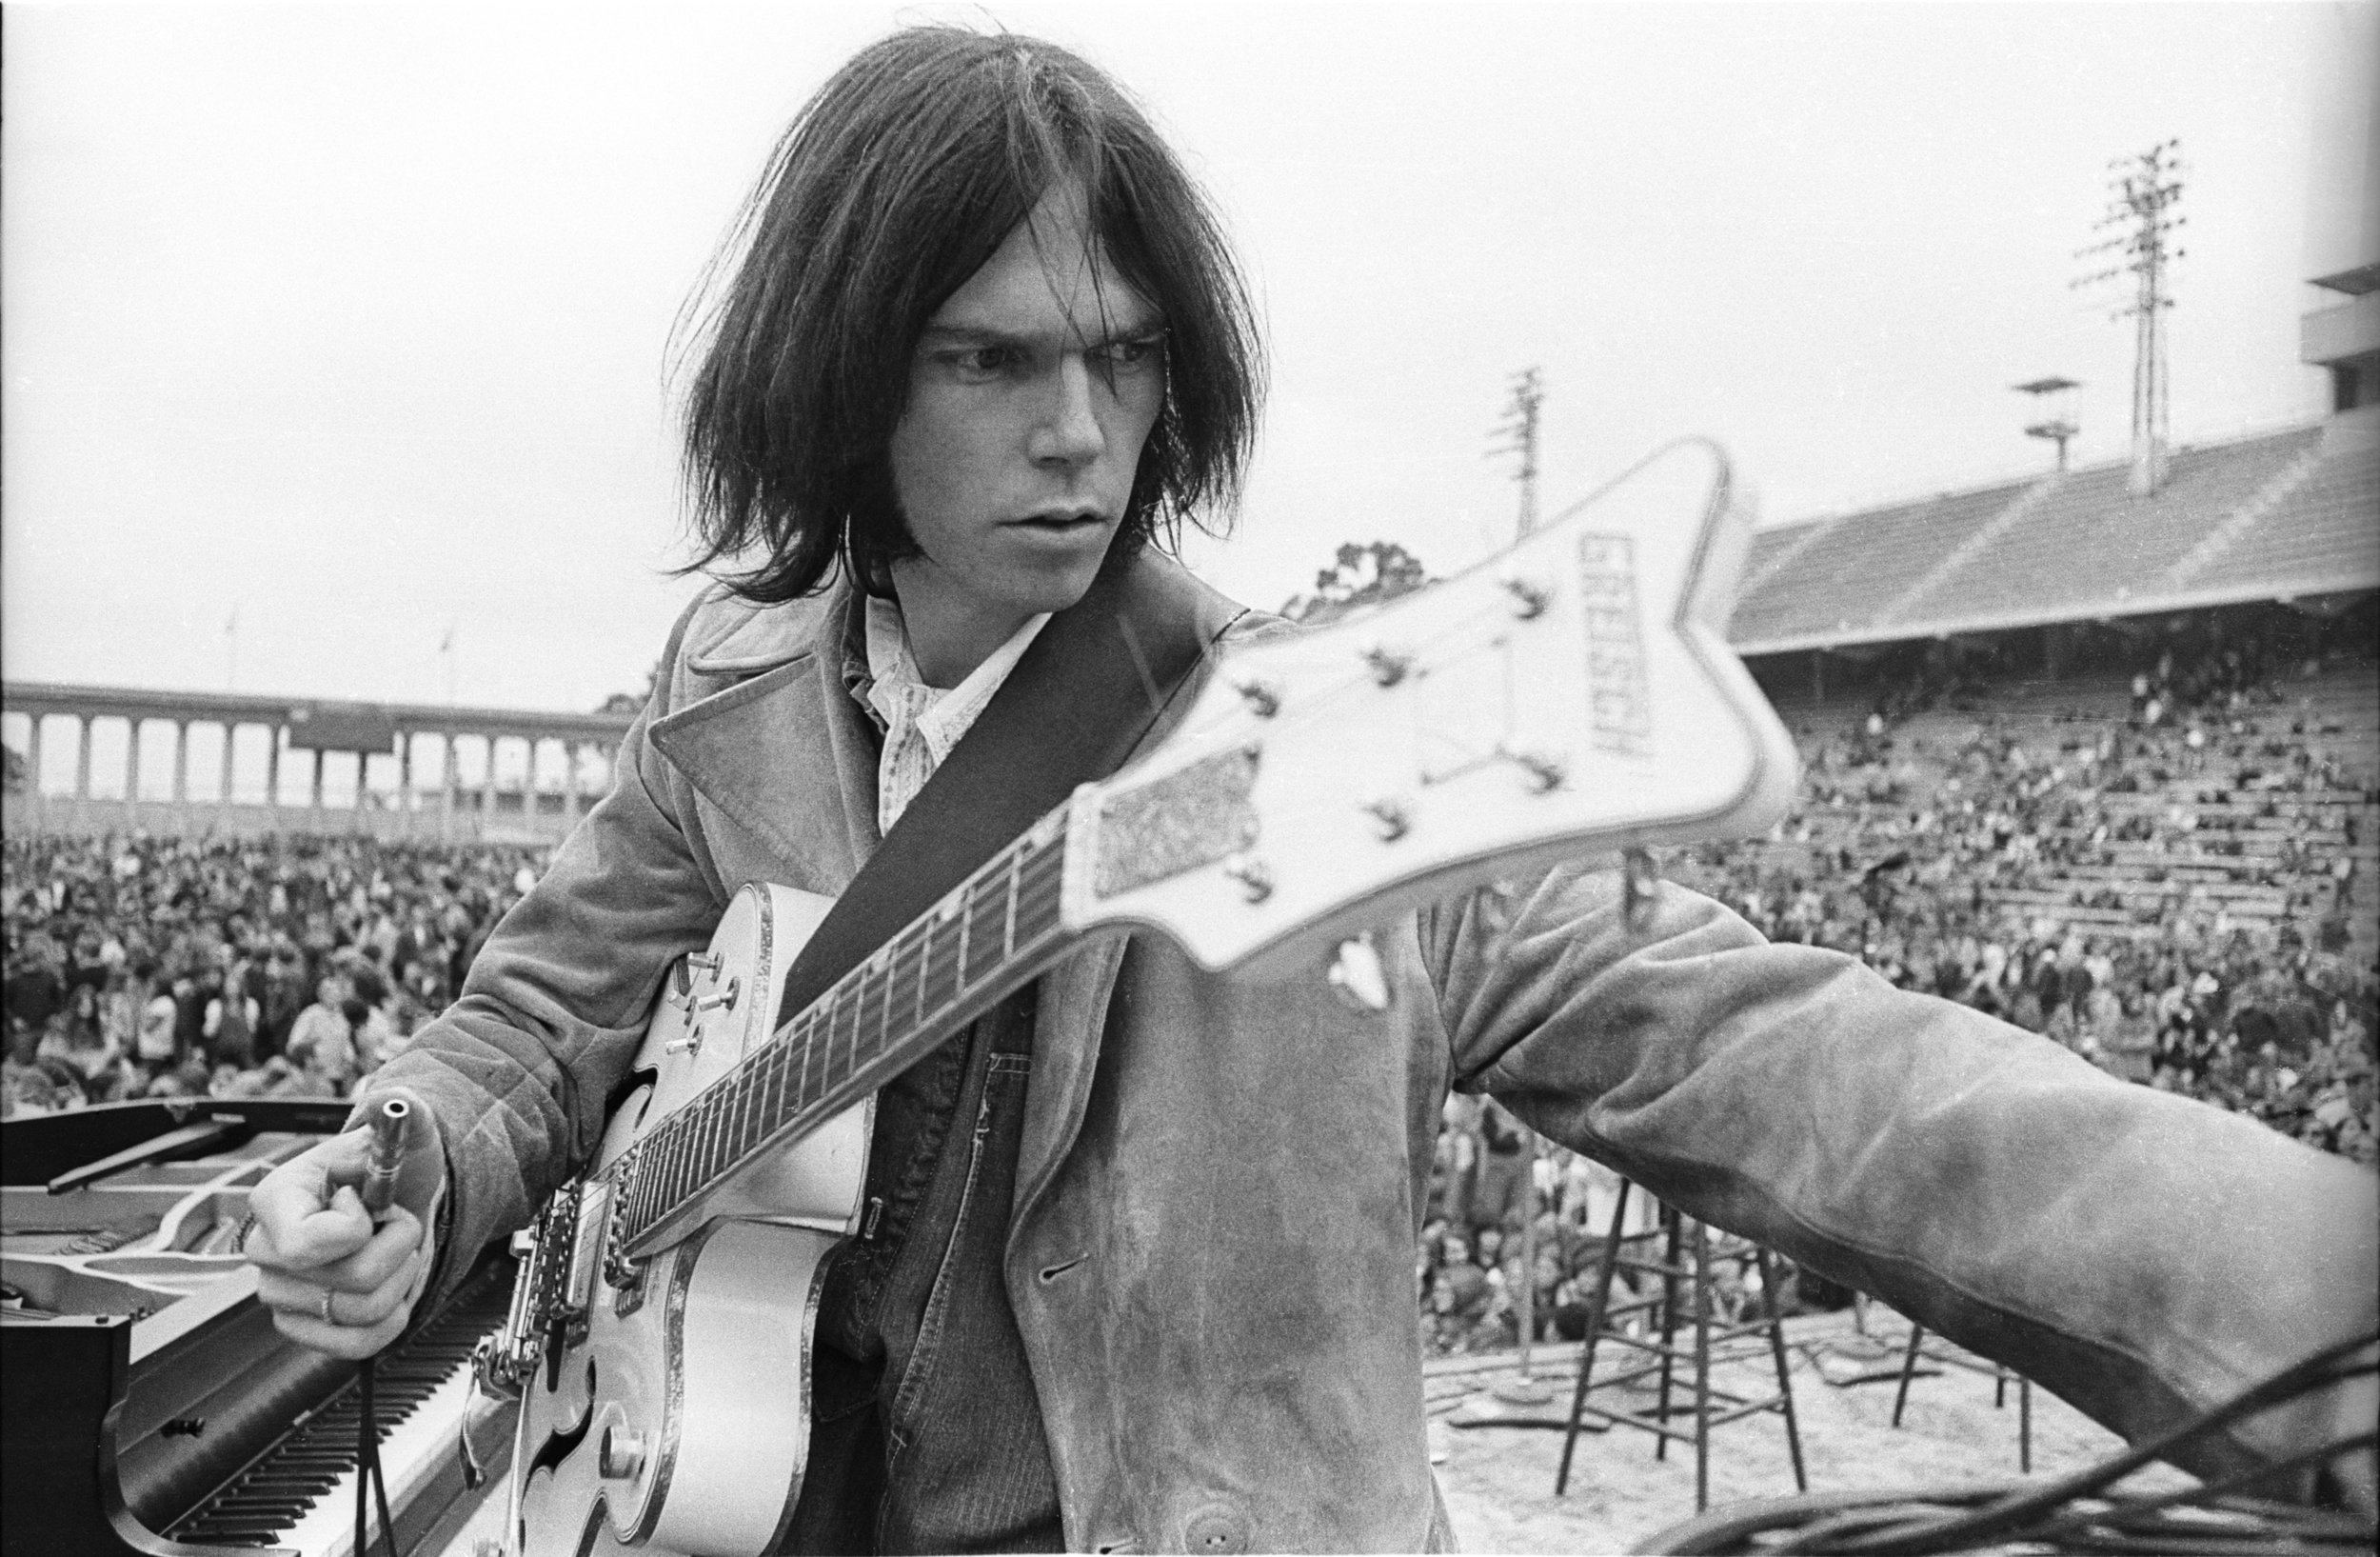 Neil Young, 'White Falcon,' Balboa Stadium, San Diego, CA 1969 by Henry Diltz